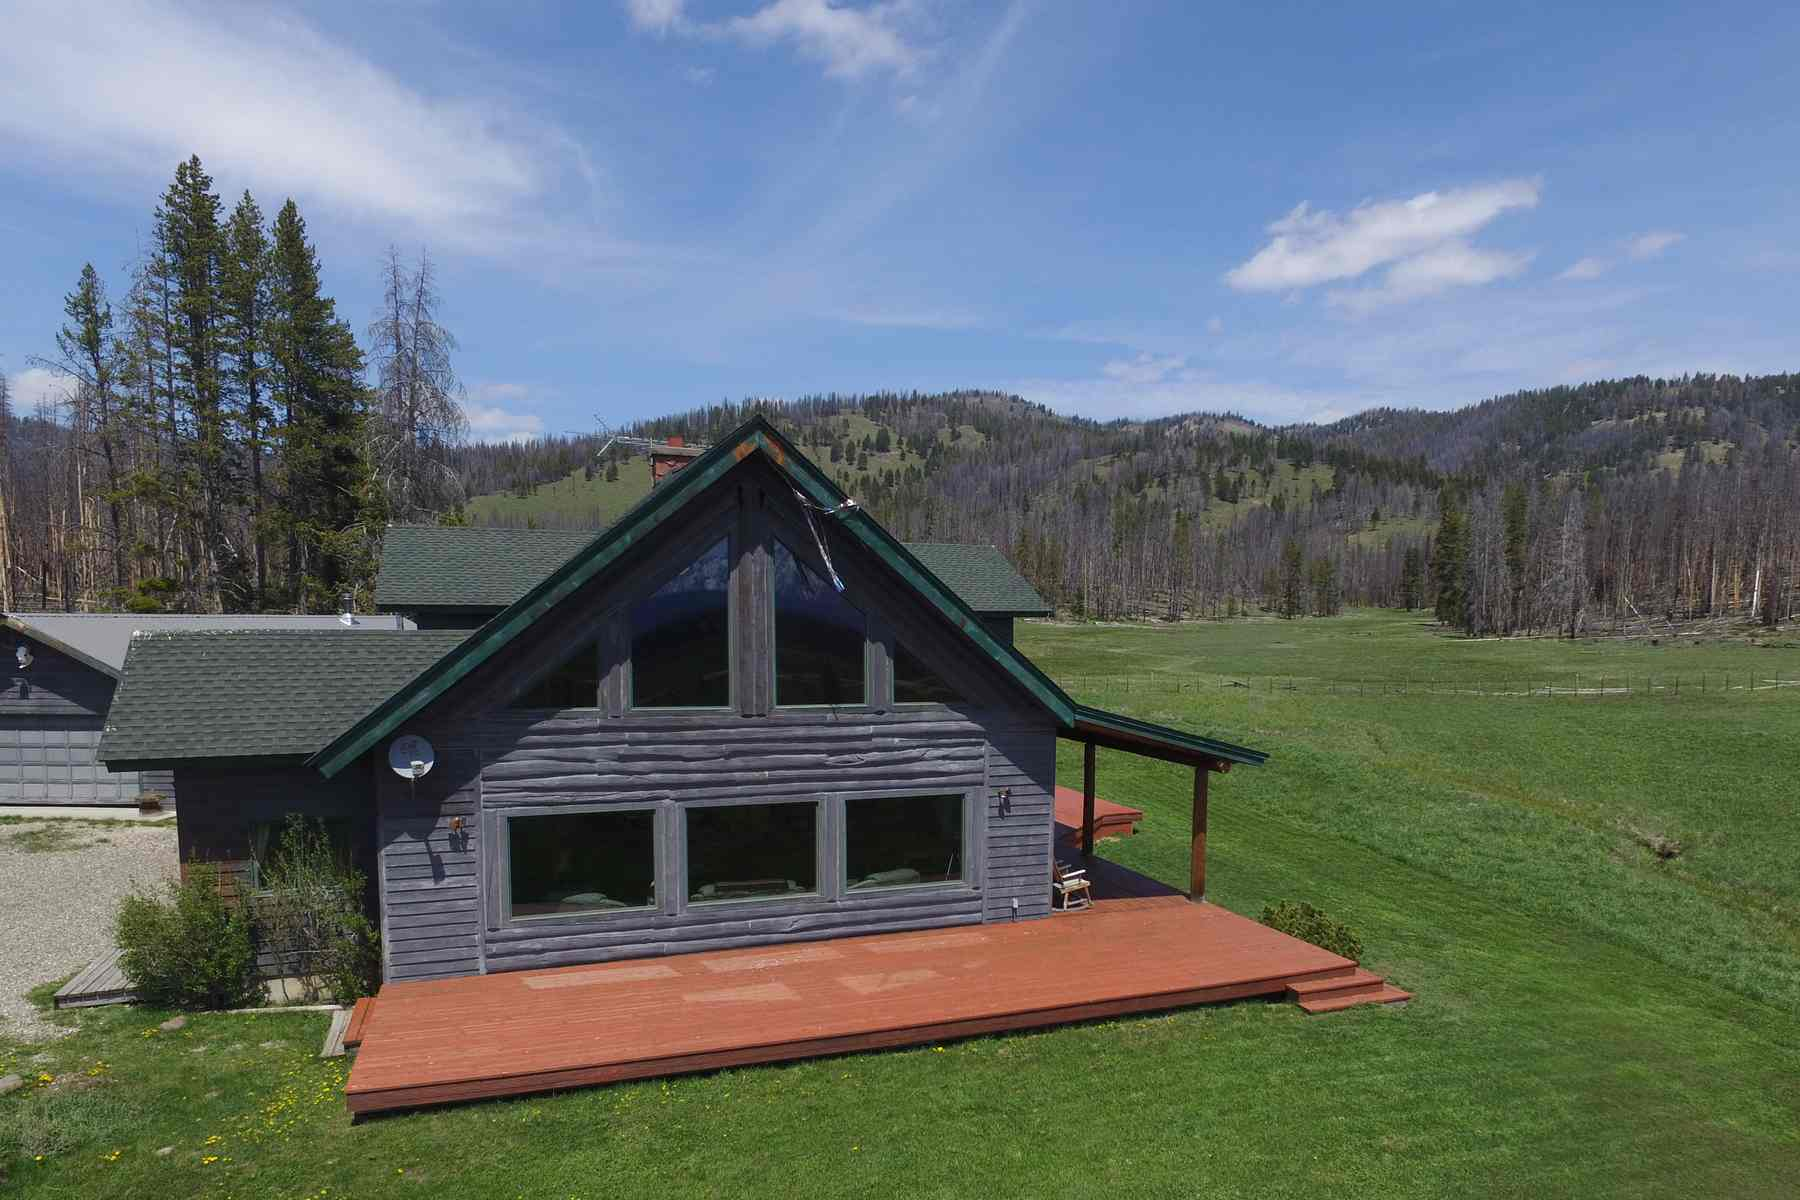 Terreno por un Venta en Sawtooth Mountain Retreat 2435 Cow Camp Road Stanley, Idaho, 83278 Estados Unidos